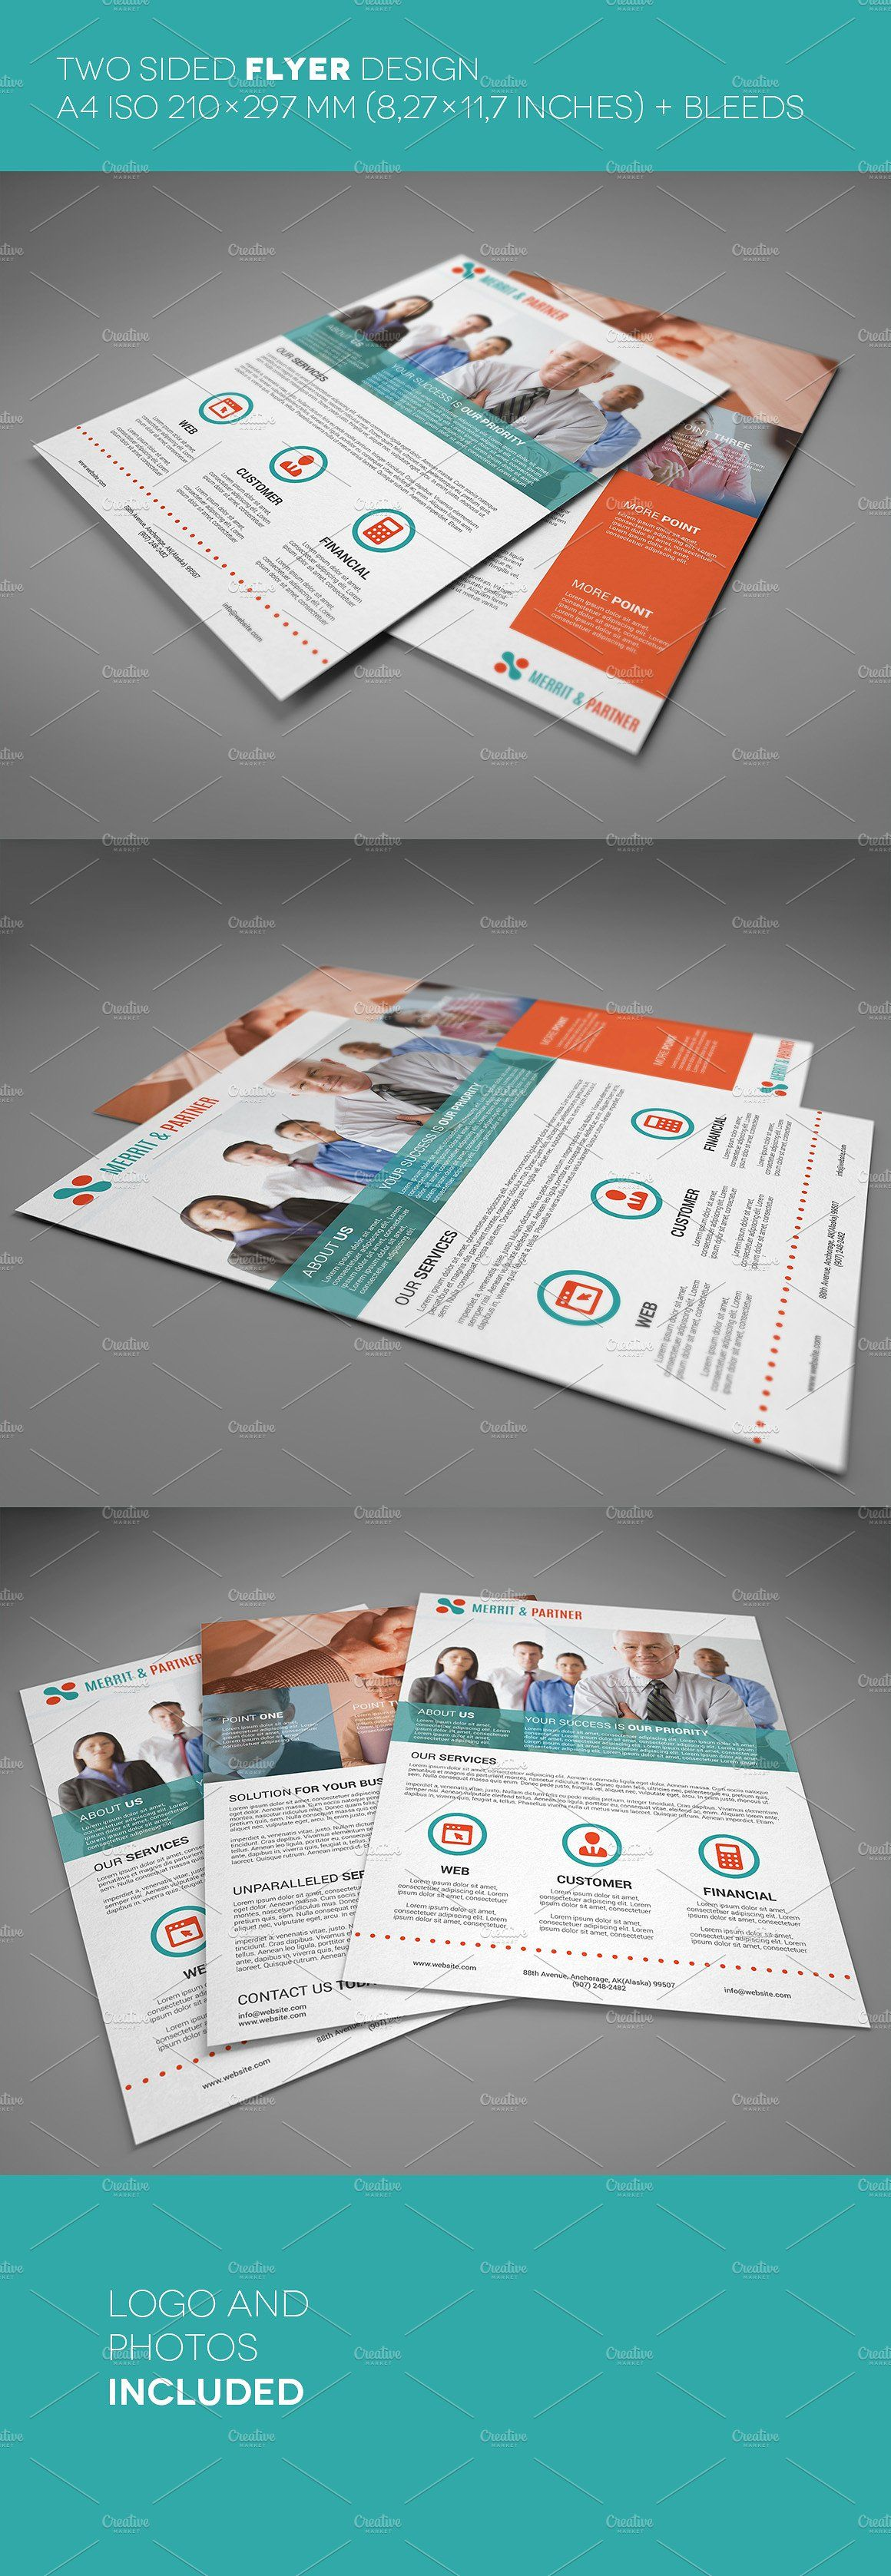 A4 Double Sided Corporate Flyer Iso